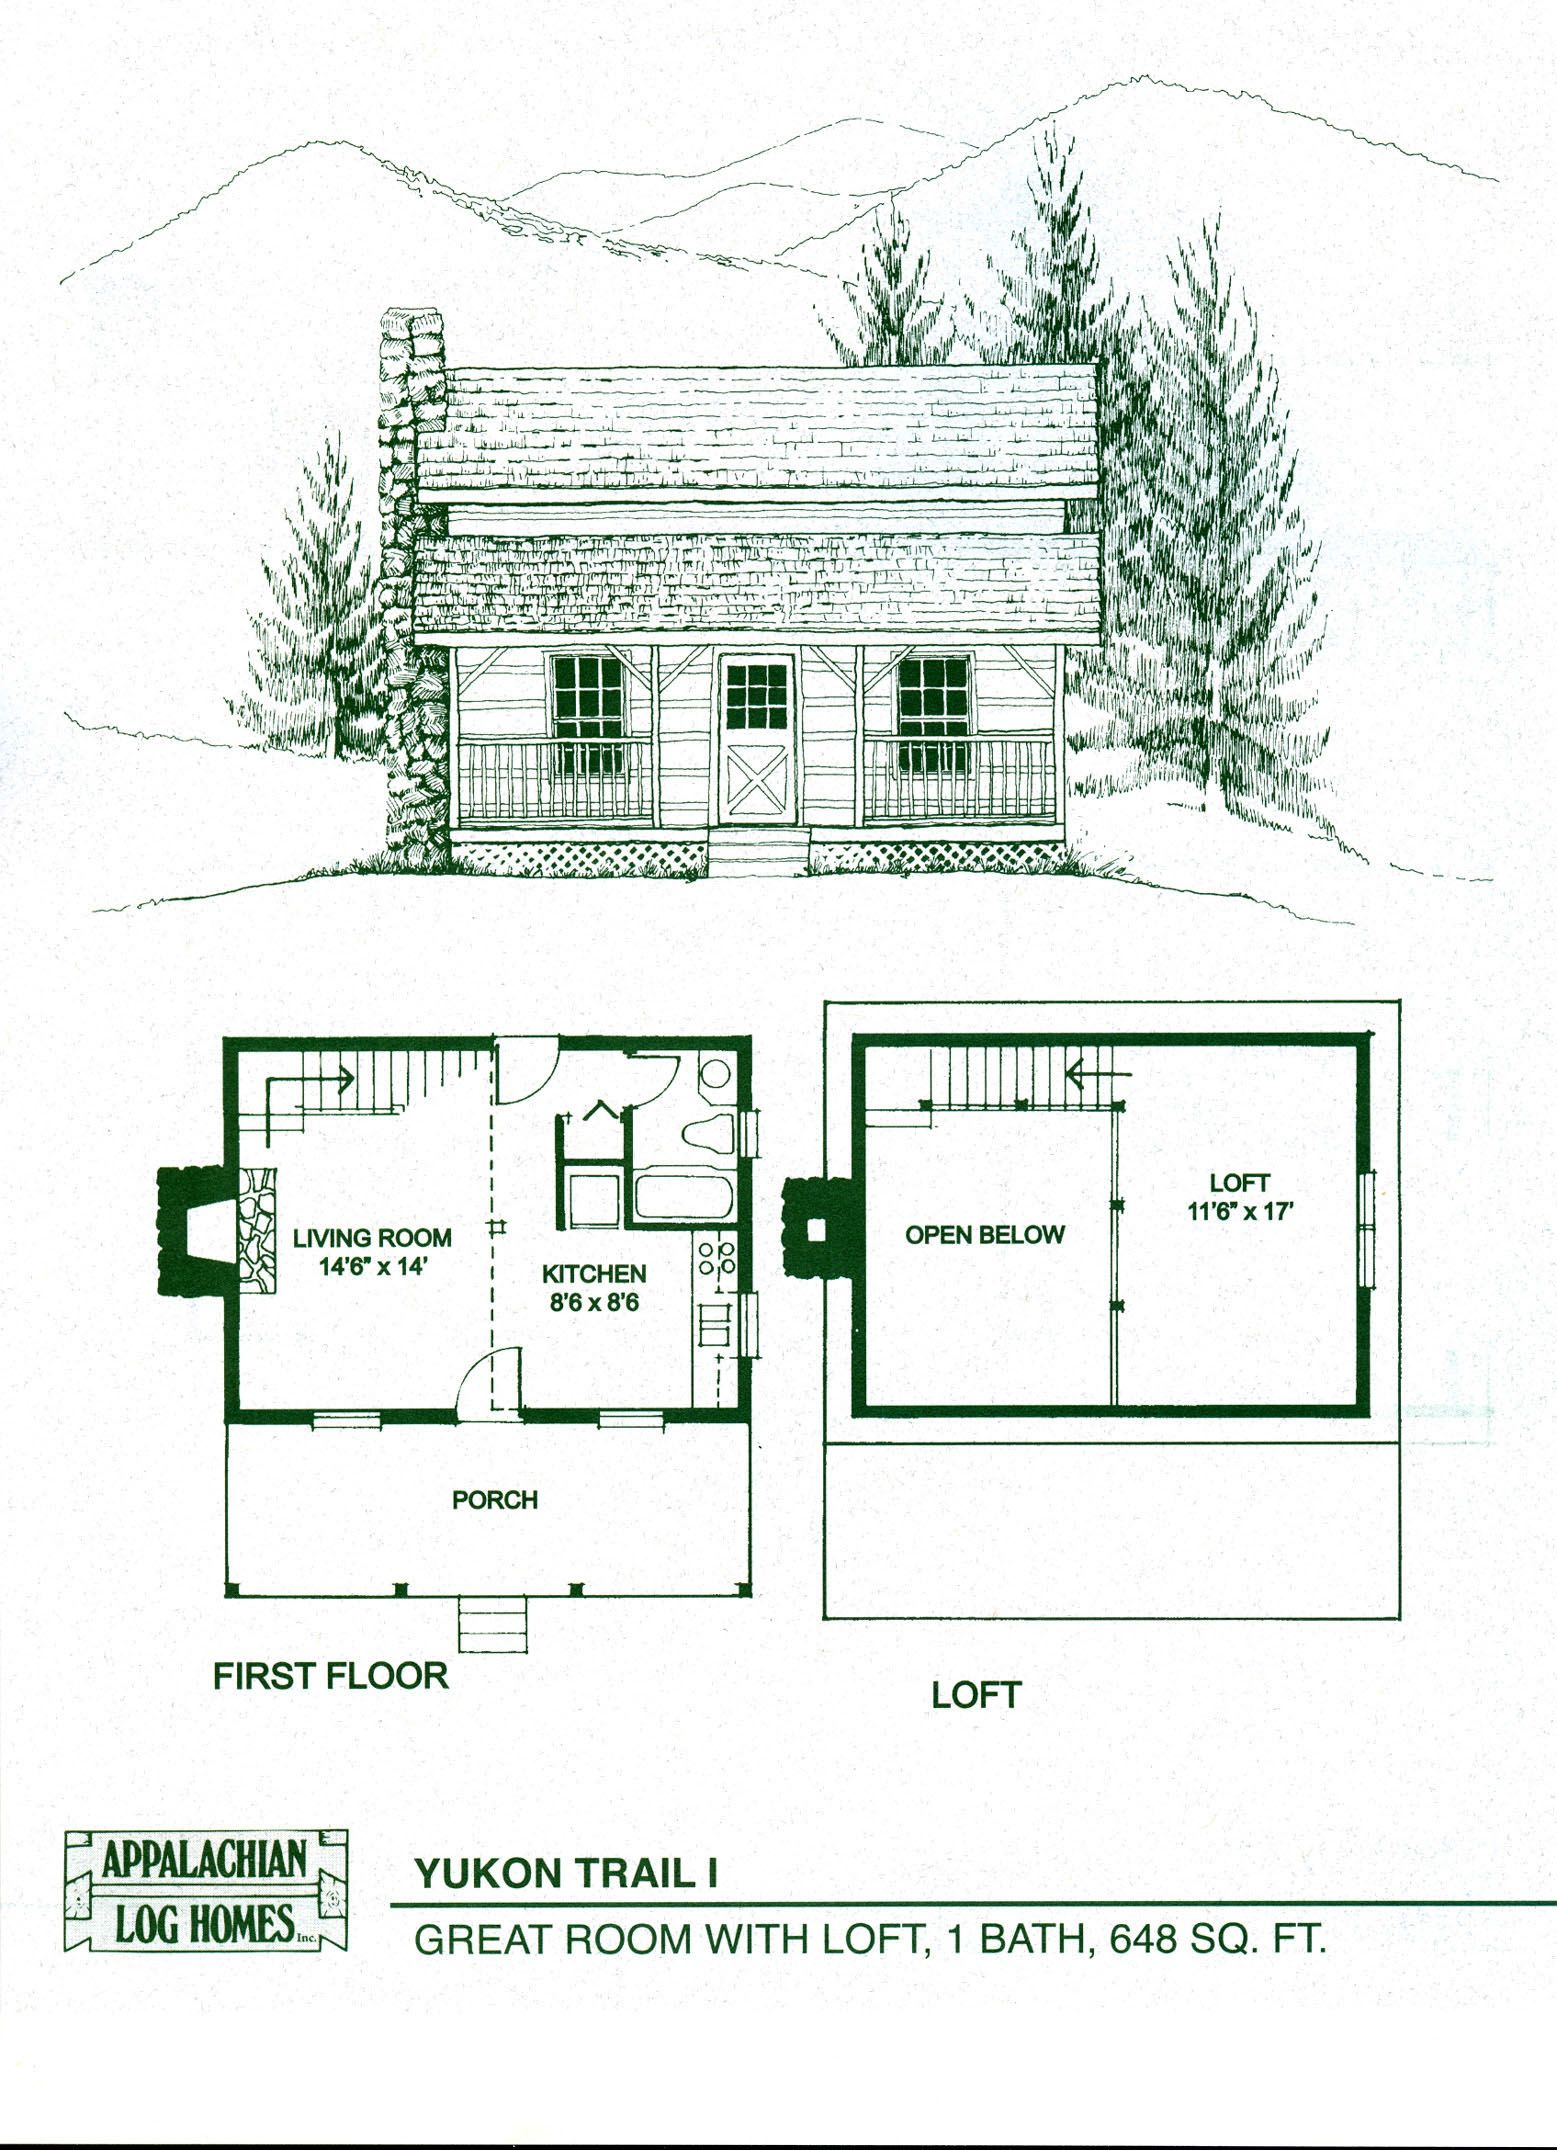 Log home floor plans log cabin kits appalachian log for Small cabin building plans free